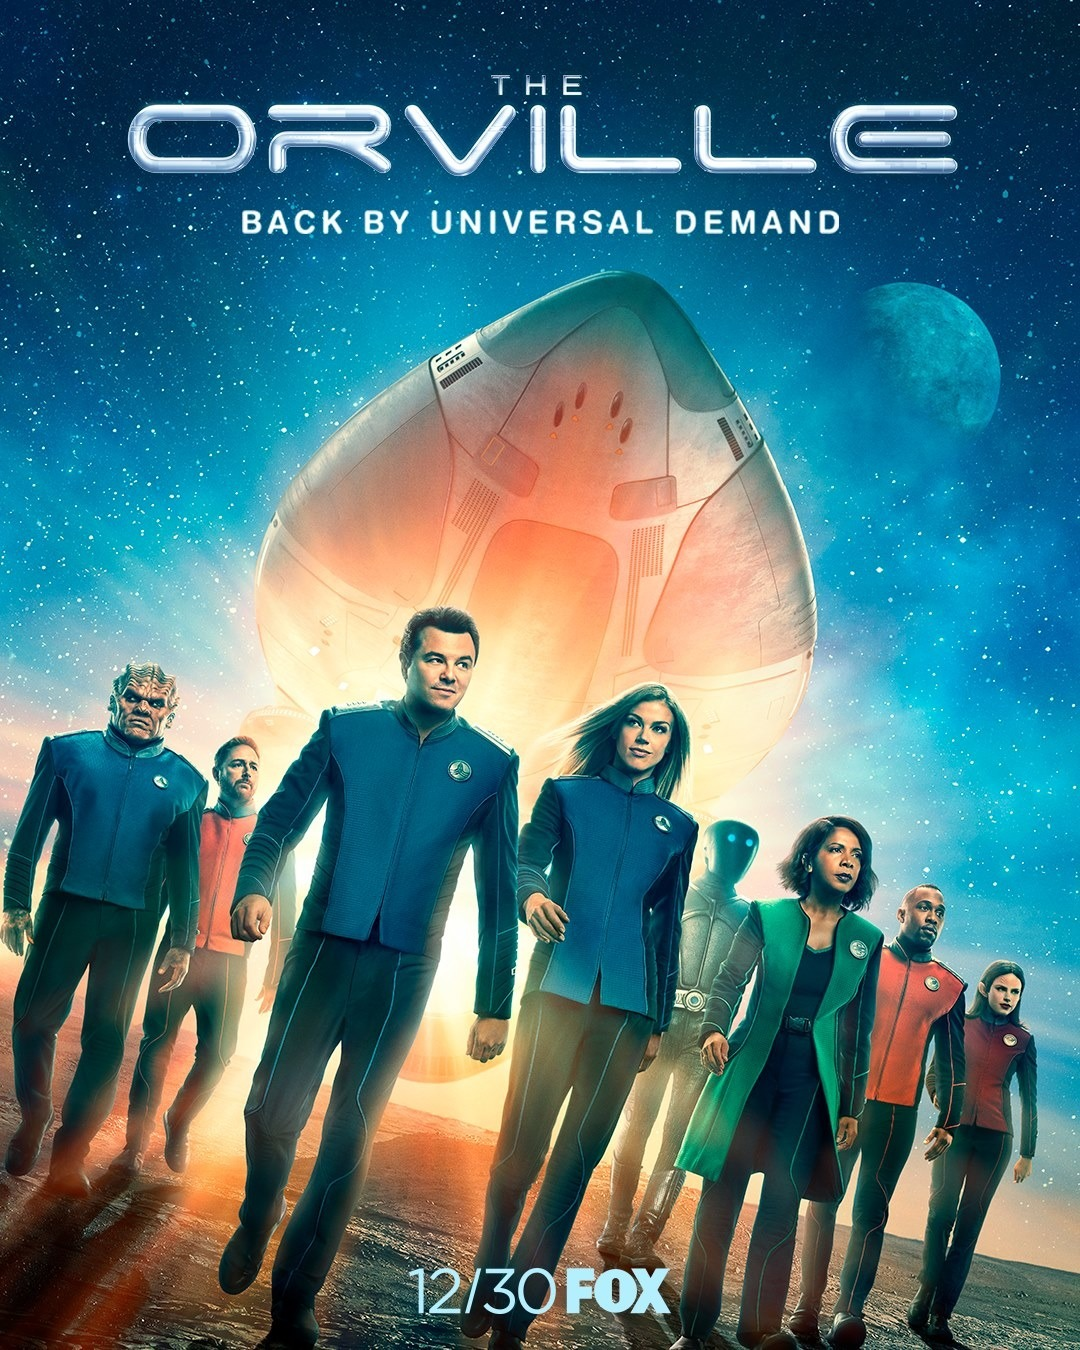 The Orville (TV Series 2017– ) - IMDb